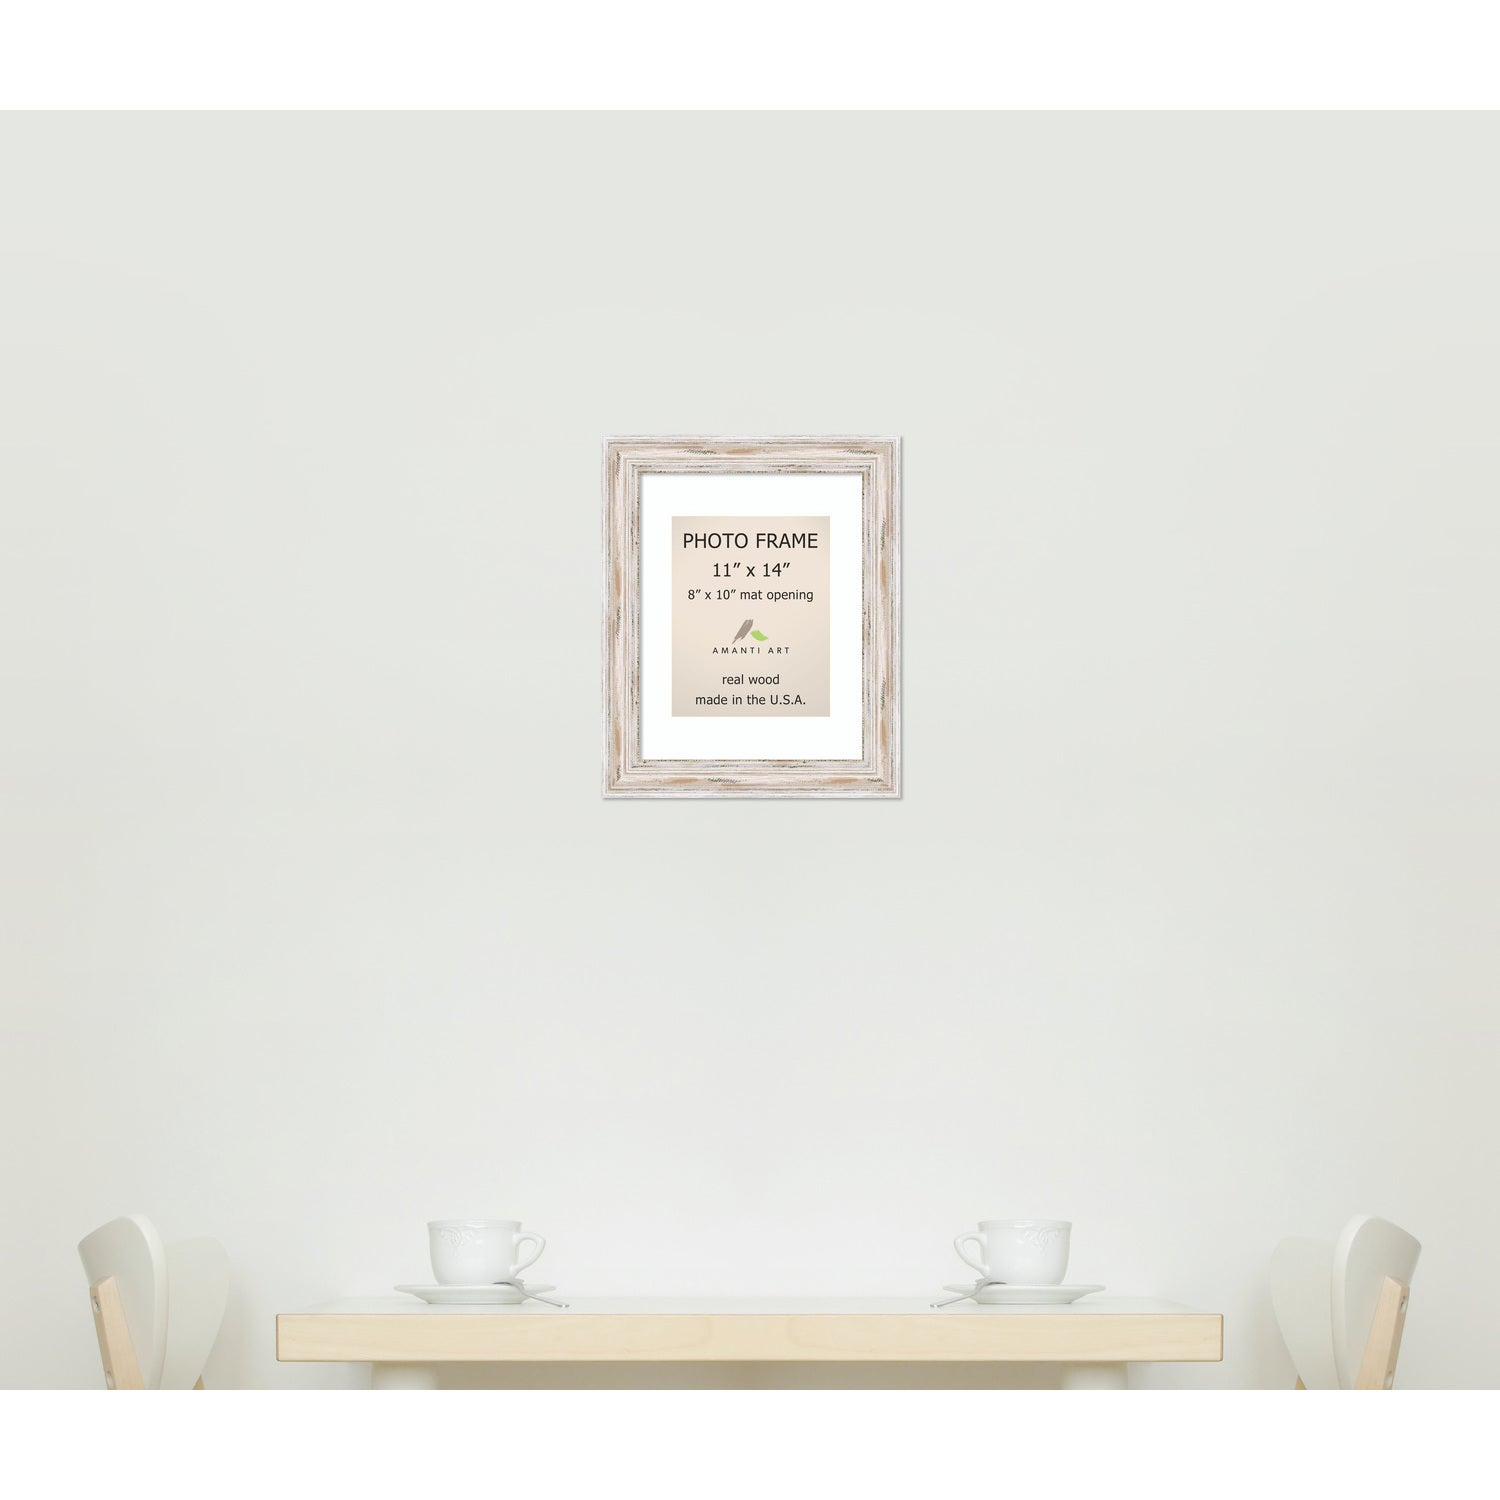 Alexandria whitewash photo frame 11x14 matted to 8x10 14 x 17 alexandria whitewash photo frame 11x14 matted to 8x10 14 x 17 inch free shipping today overstock 17221660 jeuxipadfo Image collections